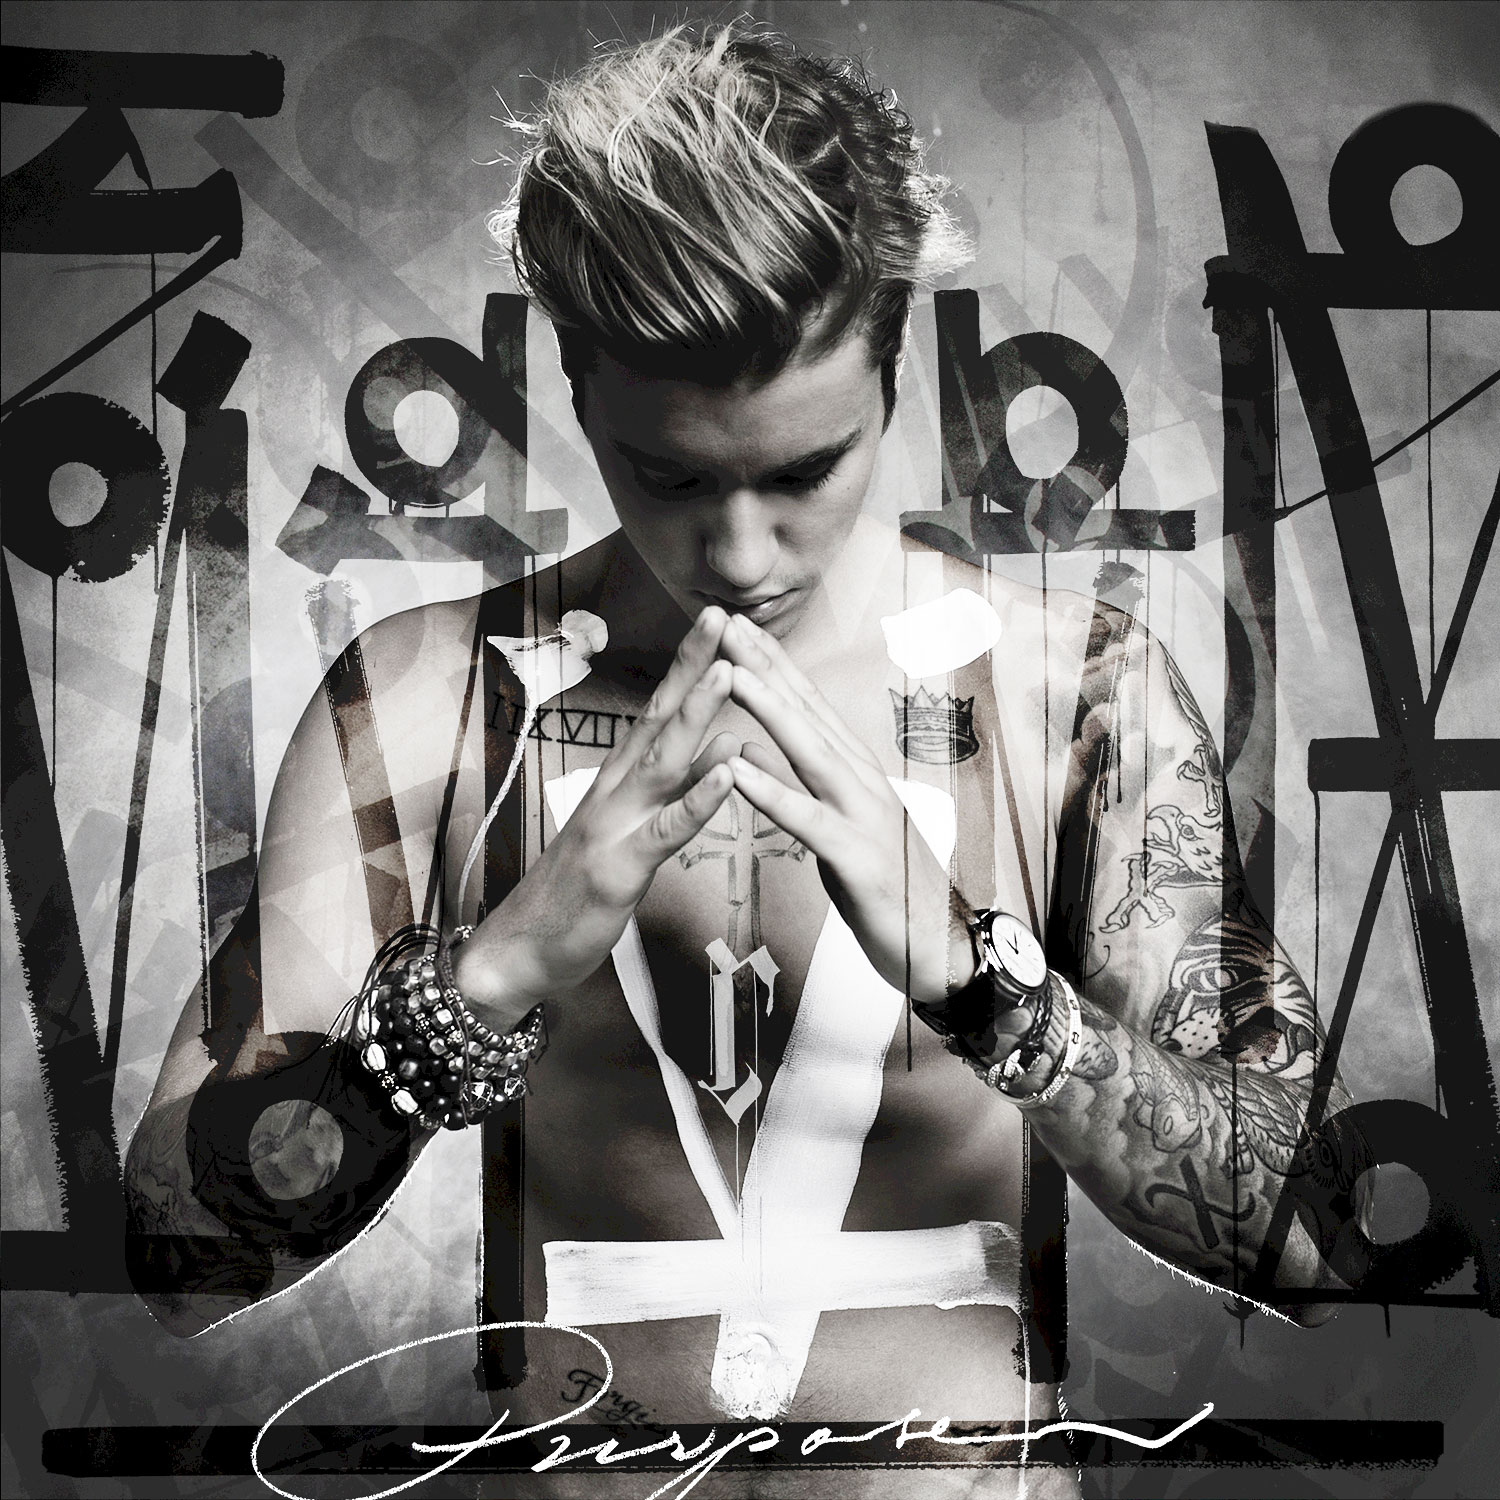 """Justin Bieber Through The Years Purpose - The pop star's fourth album, Purpose , debuted at No. 1 on the Billboard 200 and included some of his most successful singles to date, including """"What Do You Mean?,"""" """"Sorry"""" and """"Love Yourself."""" It was nominated for four Grammys, including Album of the Year and Song of the Year for """"Love Yourself."""""""